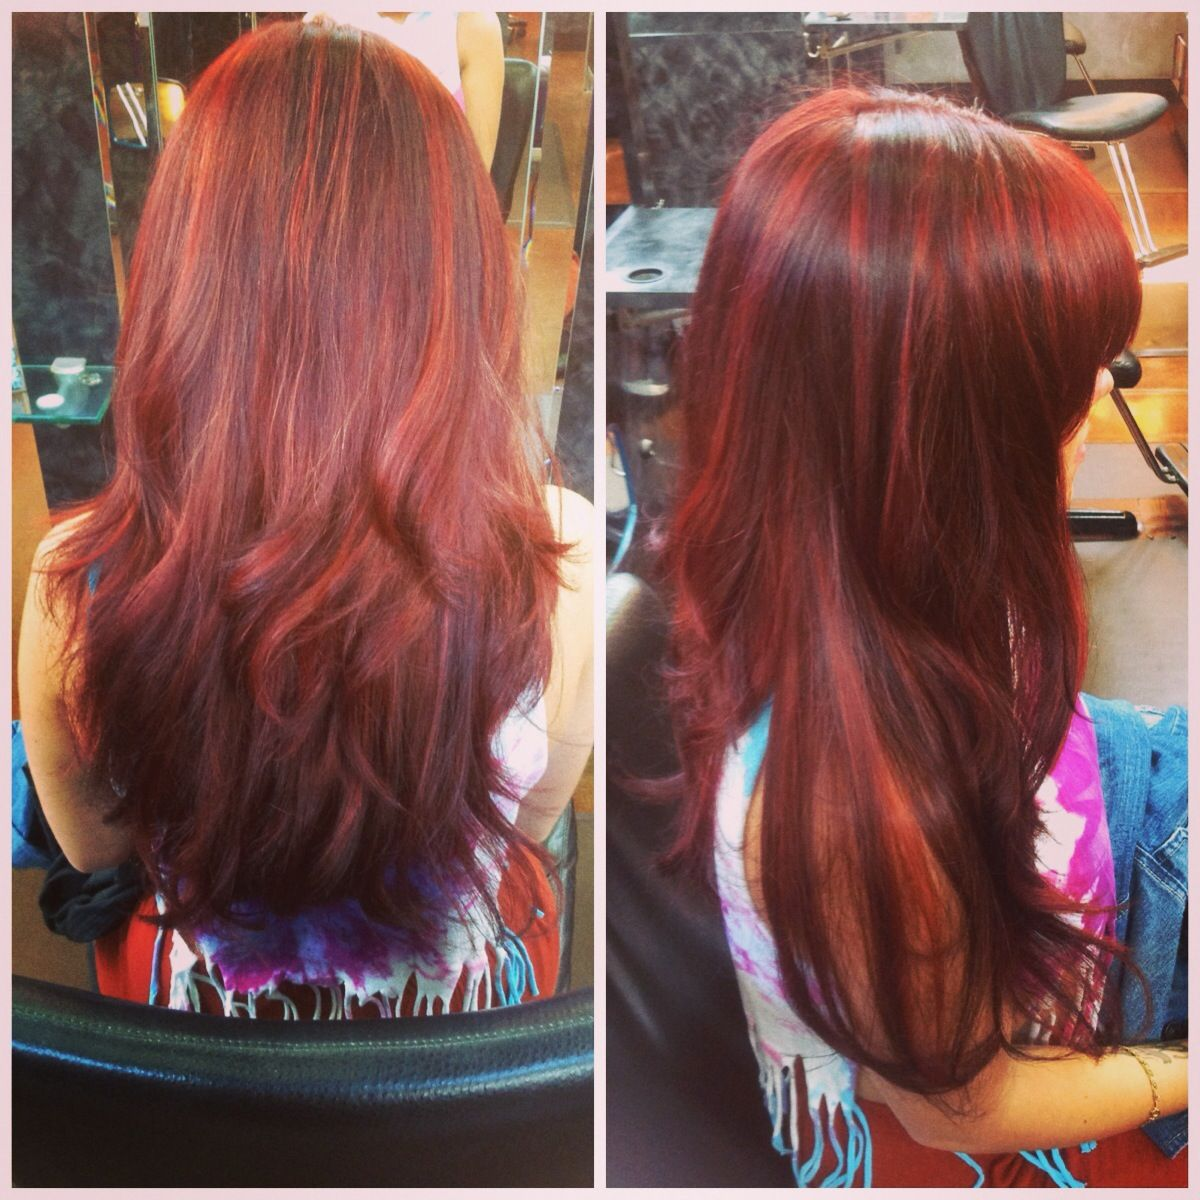 Pin By The Curl Girl On The Curl Girl Red Hair Red Hair Color Hair Red Hair